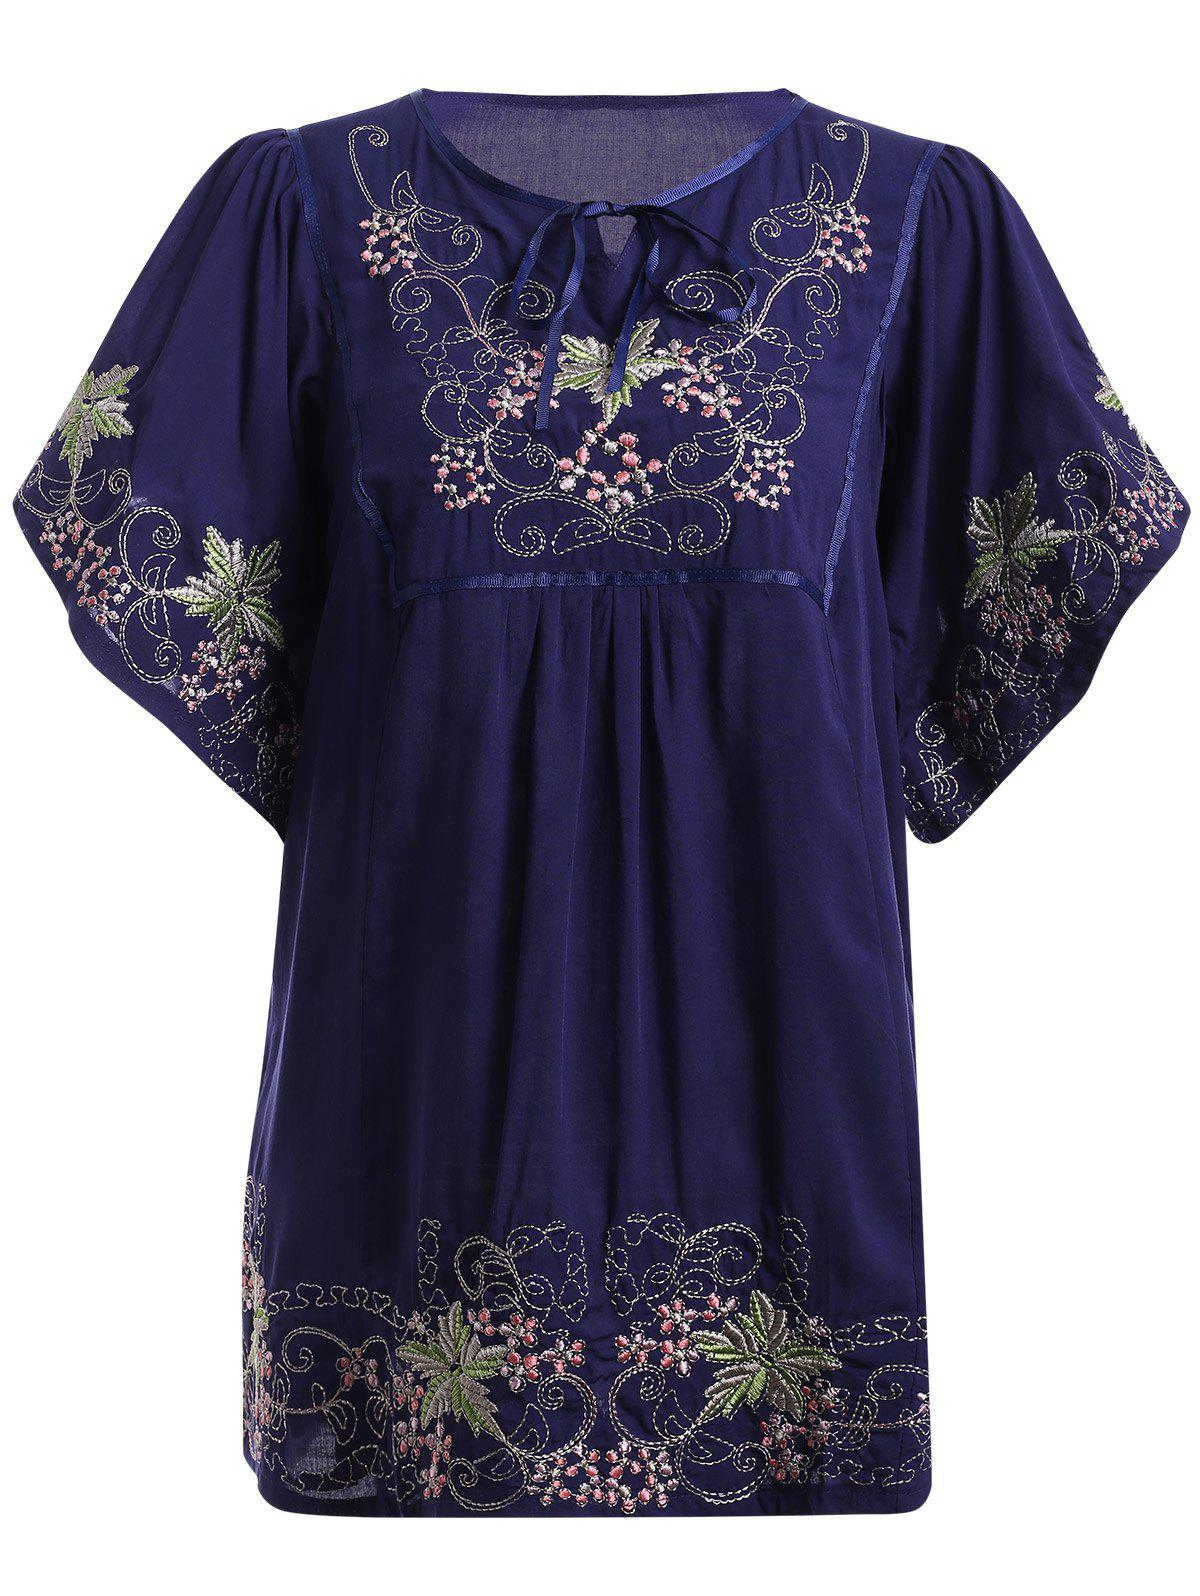 Ethnic Style Bell Sleeve Tie Neck Embroidery Top For Women - PURPLISH BLUE ONE SIZE(FIT SIZE XS TO M)